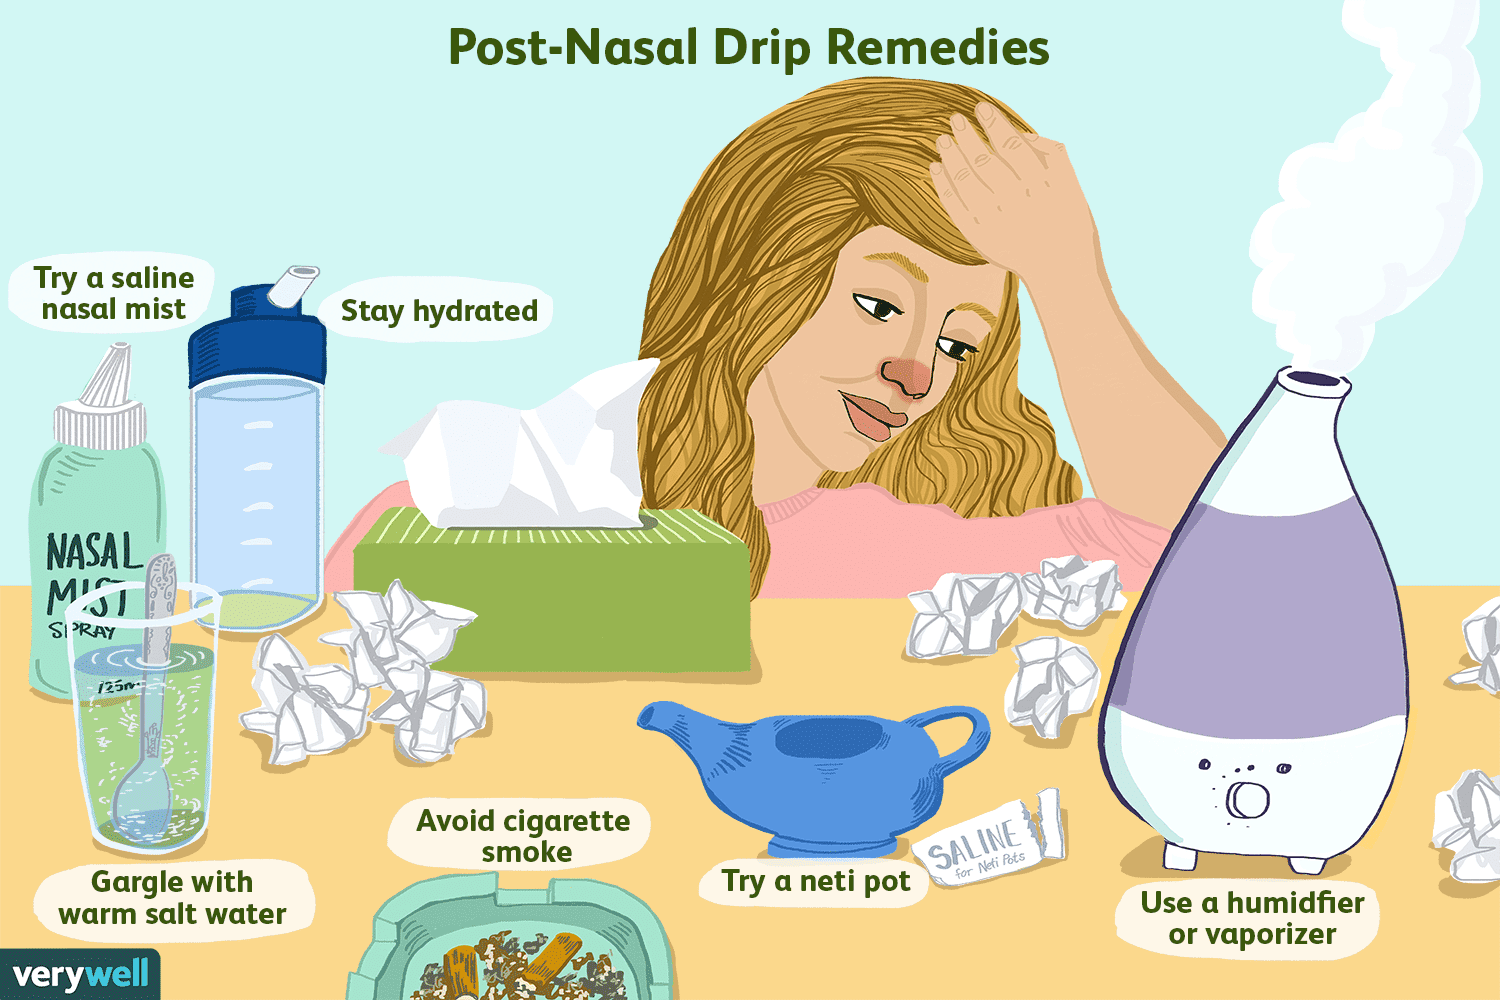 Illustration of woman with a reddened nose resting her head on her hand. Text on image reads: Post-Nasal Drip Remedies: Try a saline nasal mist; stay hydrated; gargle with warm salt water; avoid cigarette smoke; try a neti pot; use a humidifier or vaporizer